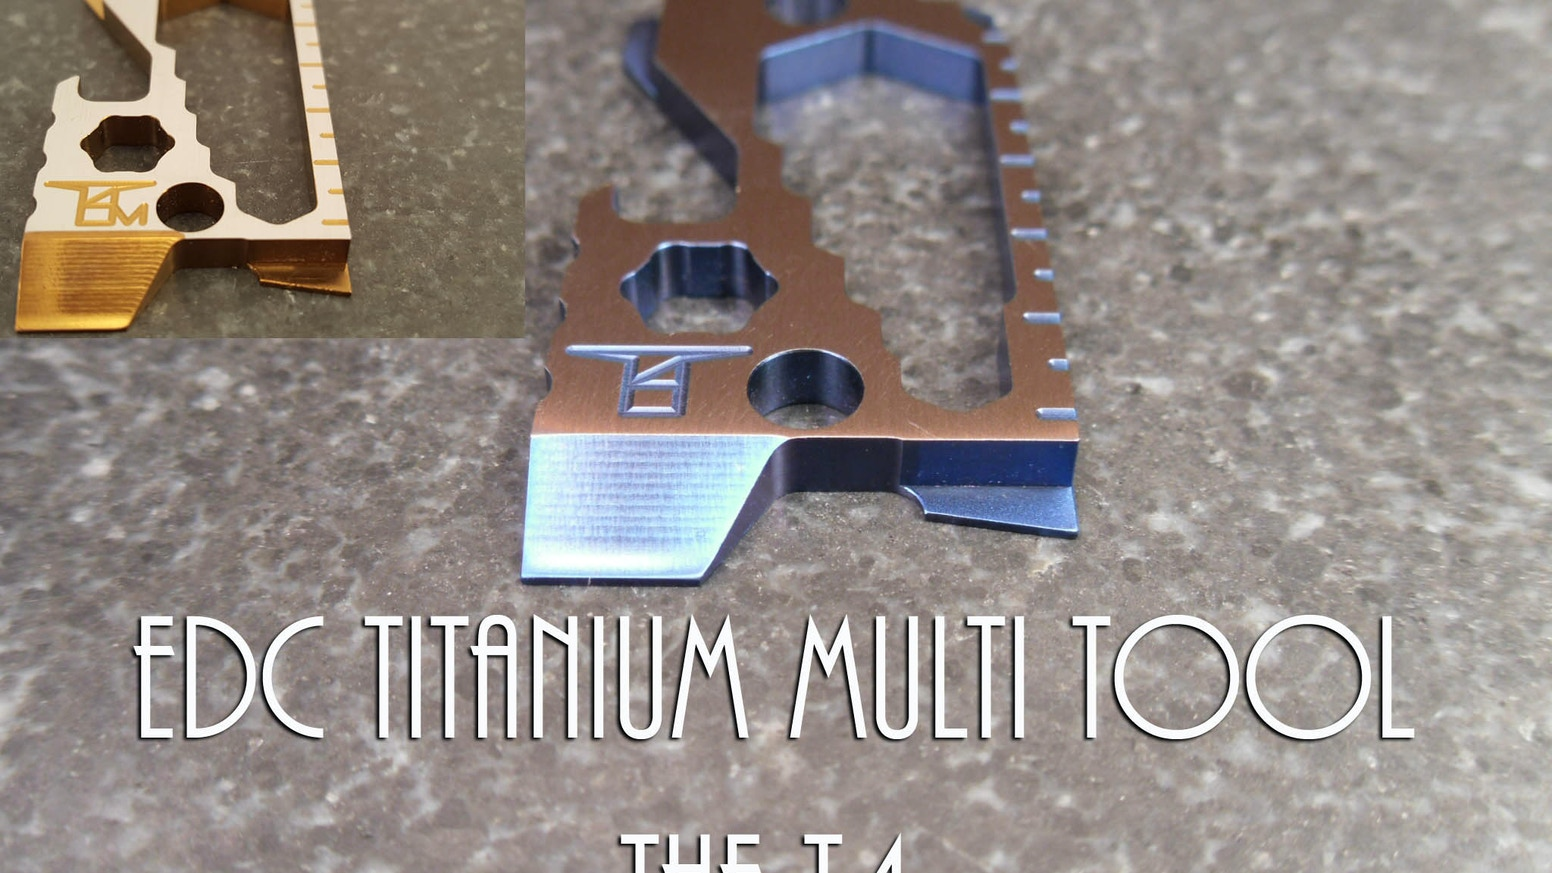 A small titanium multi tool with many features.